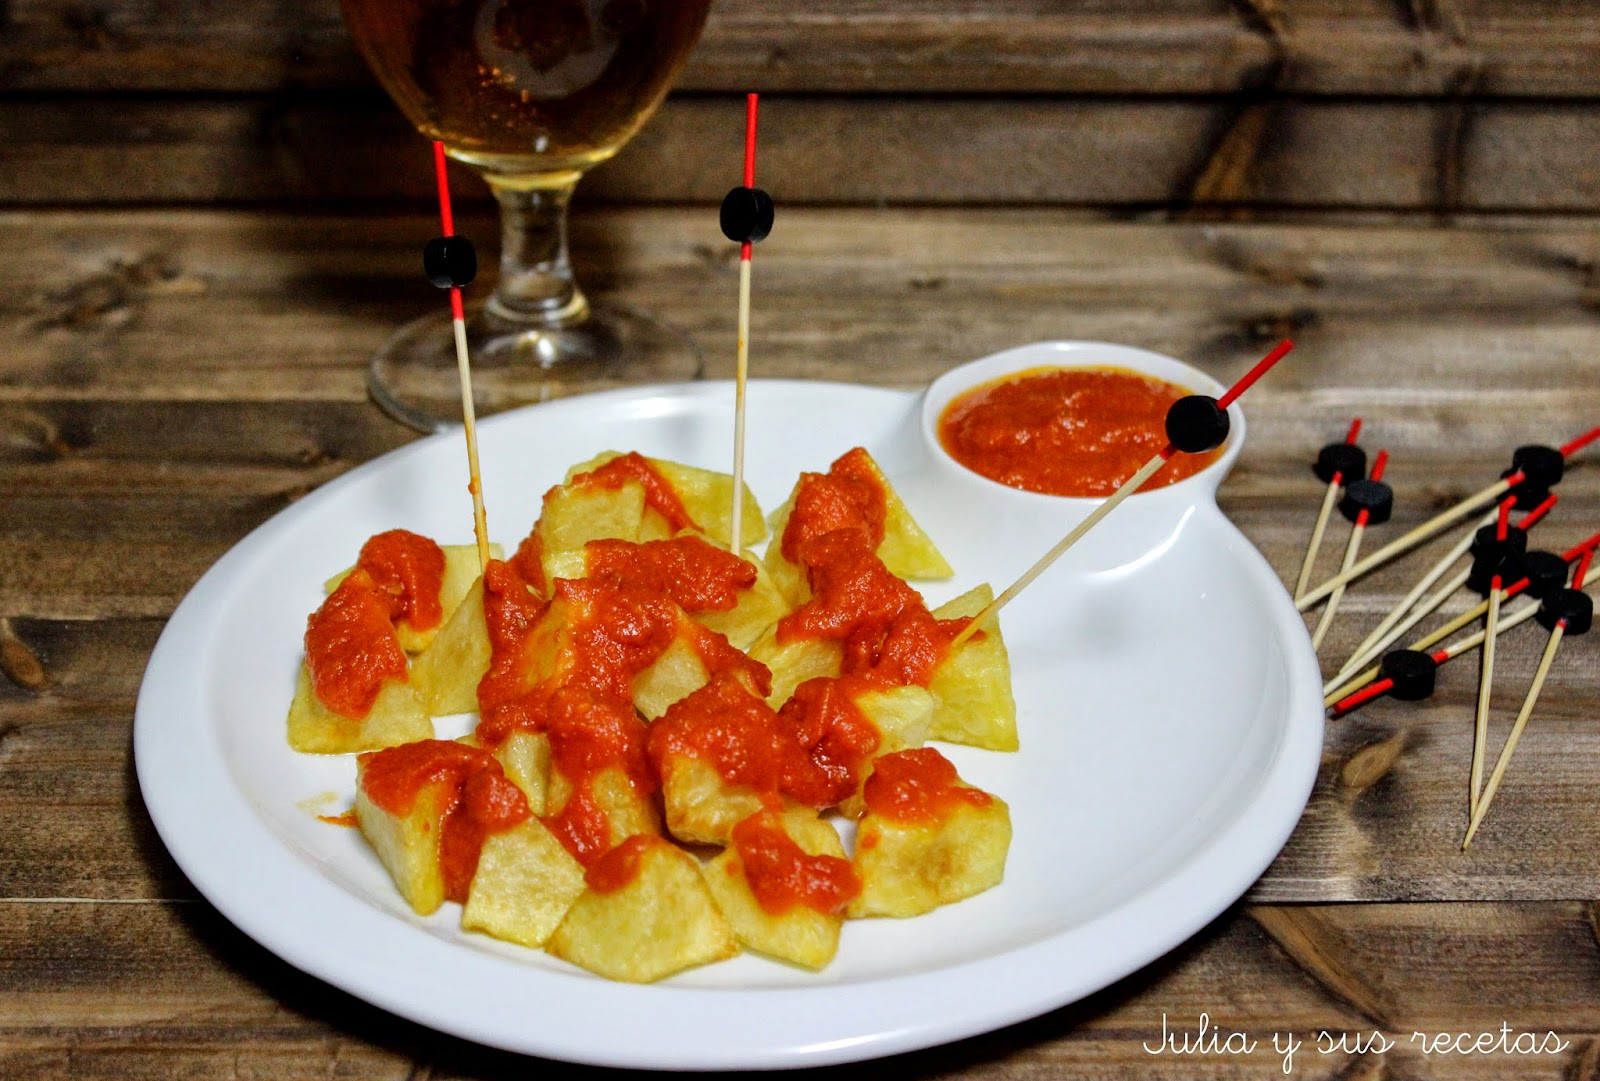 Patatas bravas. Julia y sus recetas